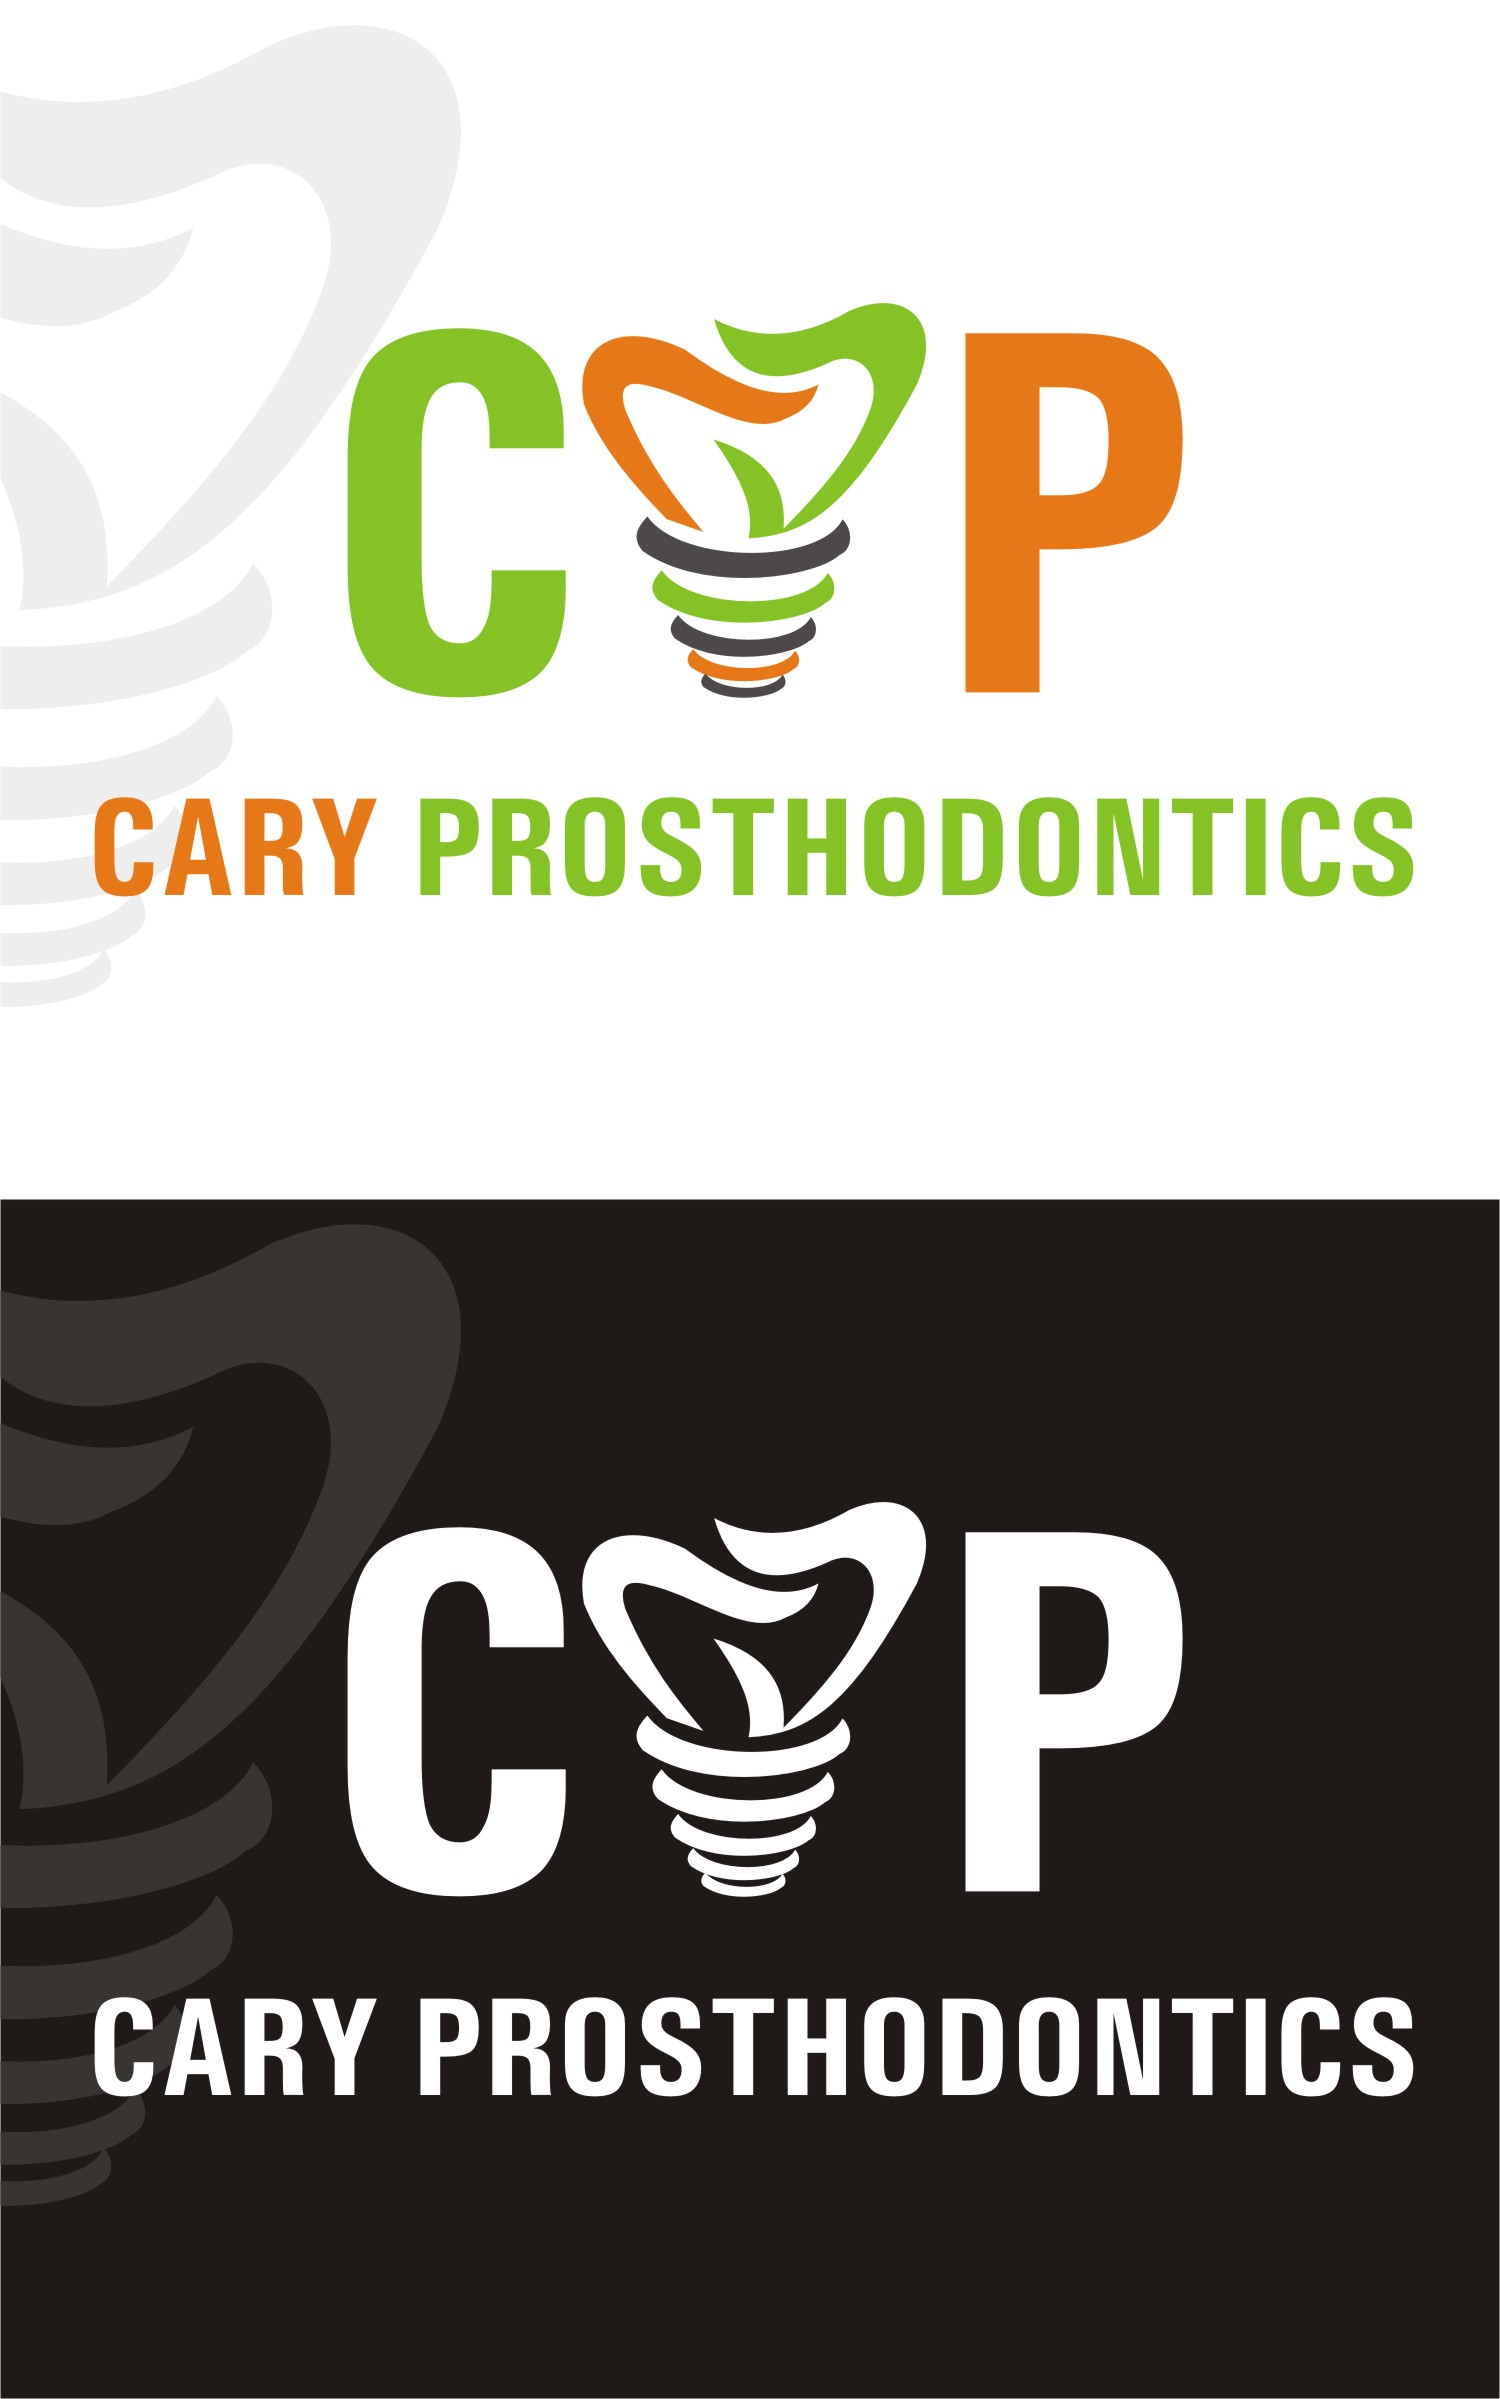 Logo Design by Spider Graphics - Entry No. 90 in the Logo Design Contest Cary Prosthodontics Logo Design.